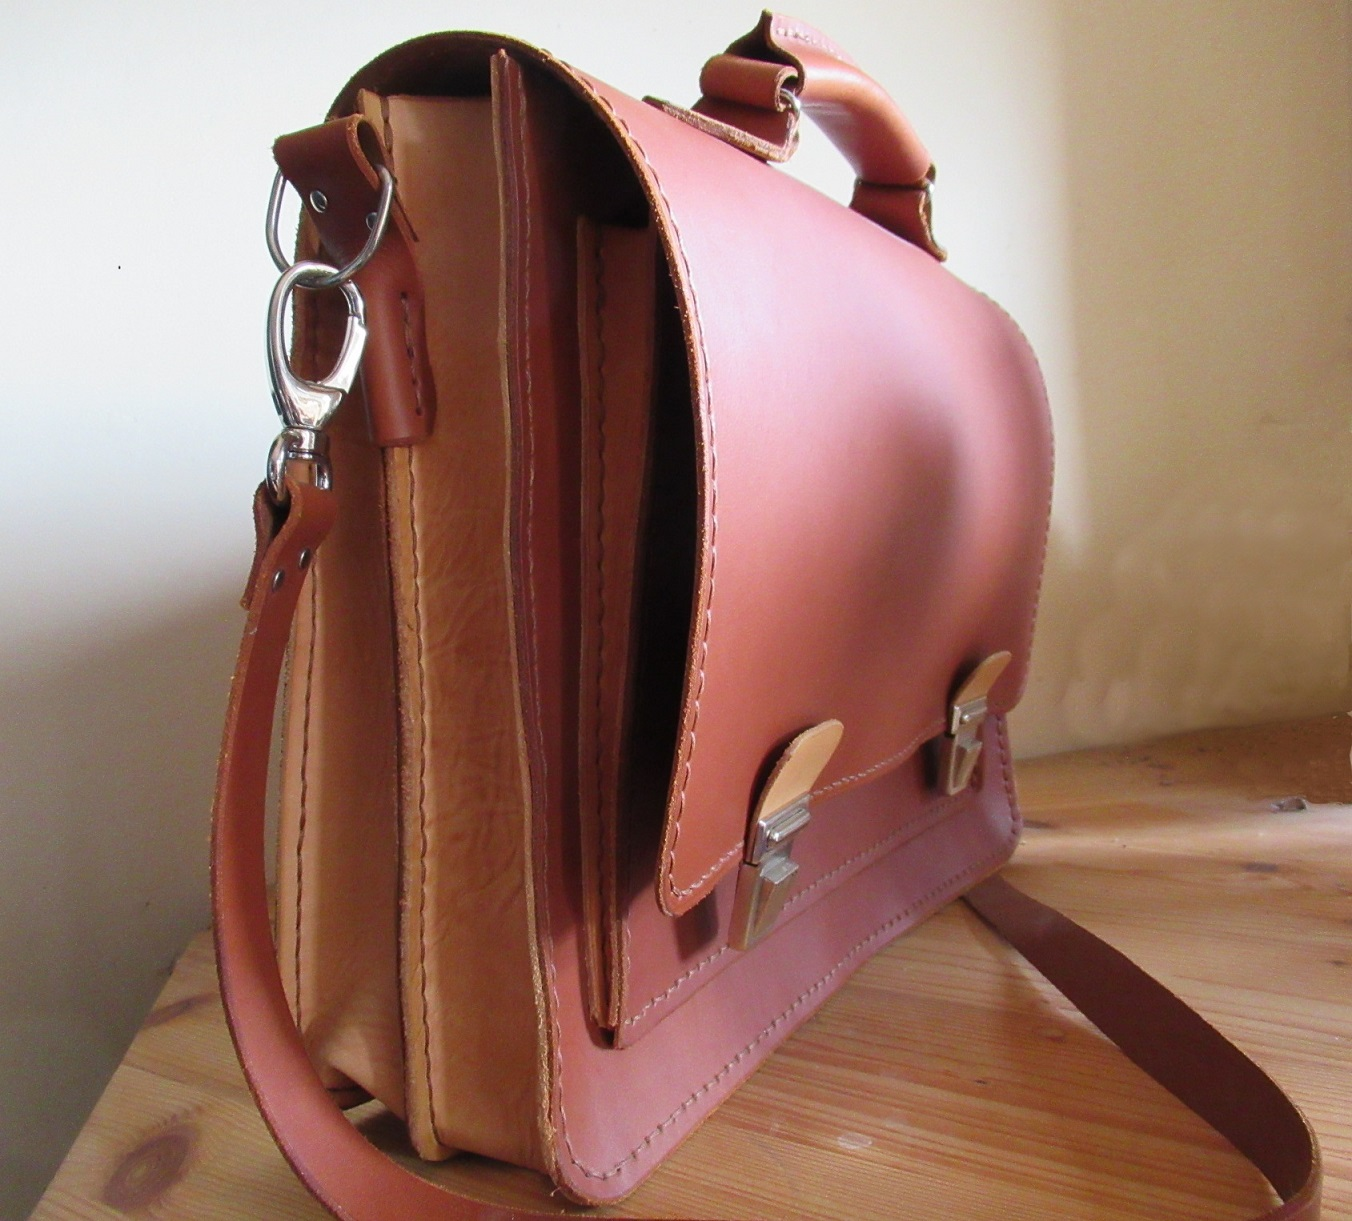 Cartable en cuir marron clair vu de profil